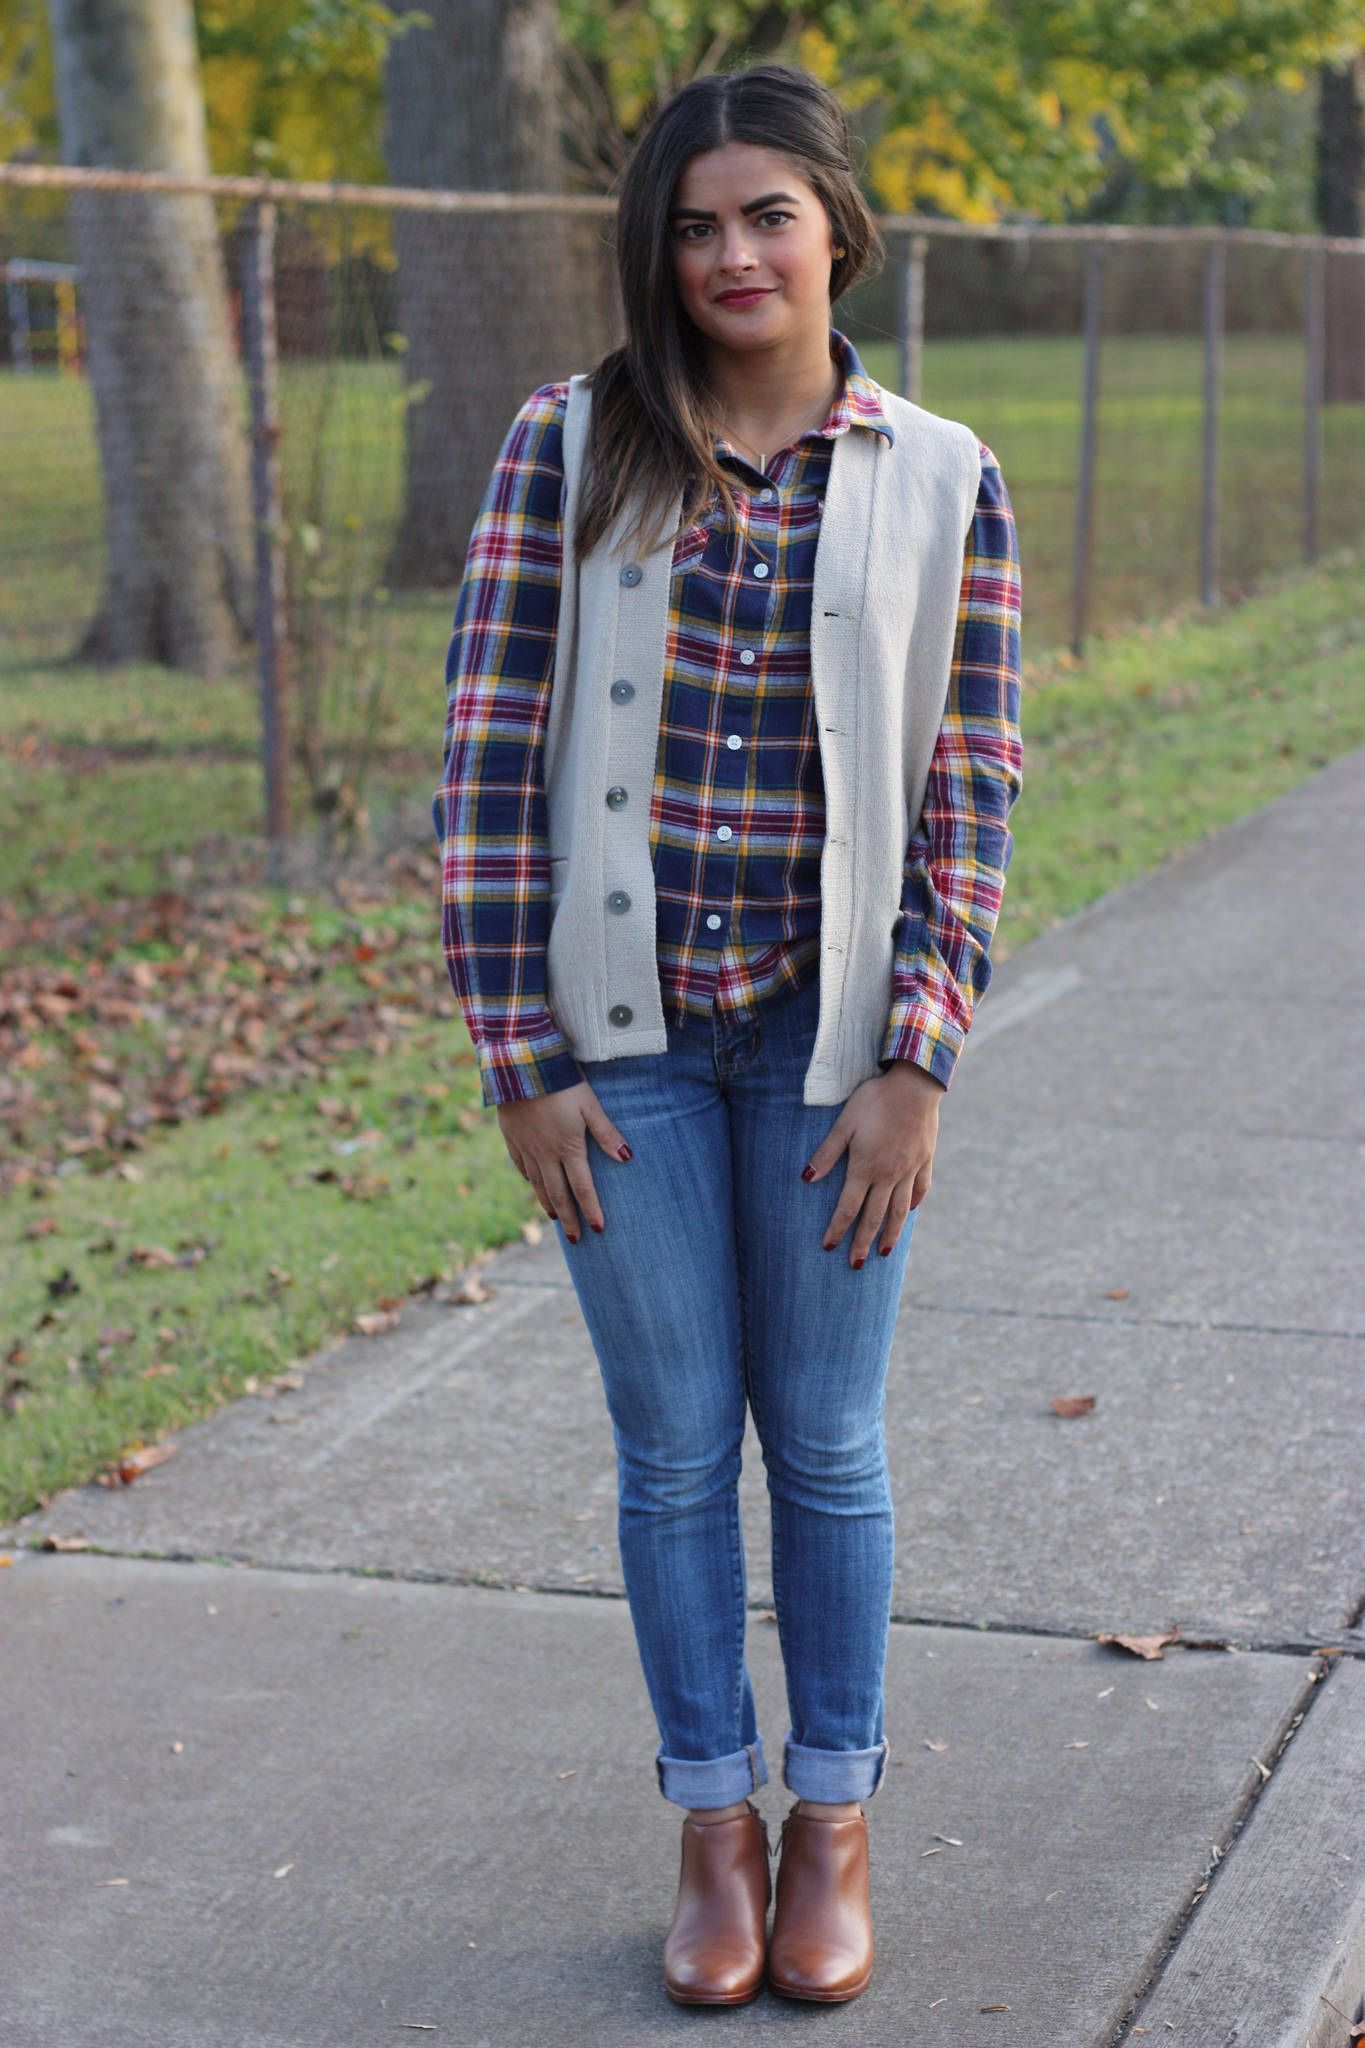 Remix: Sweater Vest! | Flannels, Sassy and Casual chic